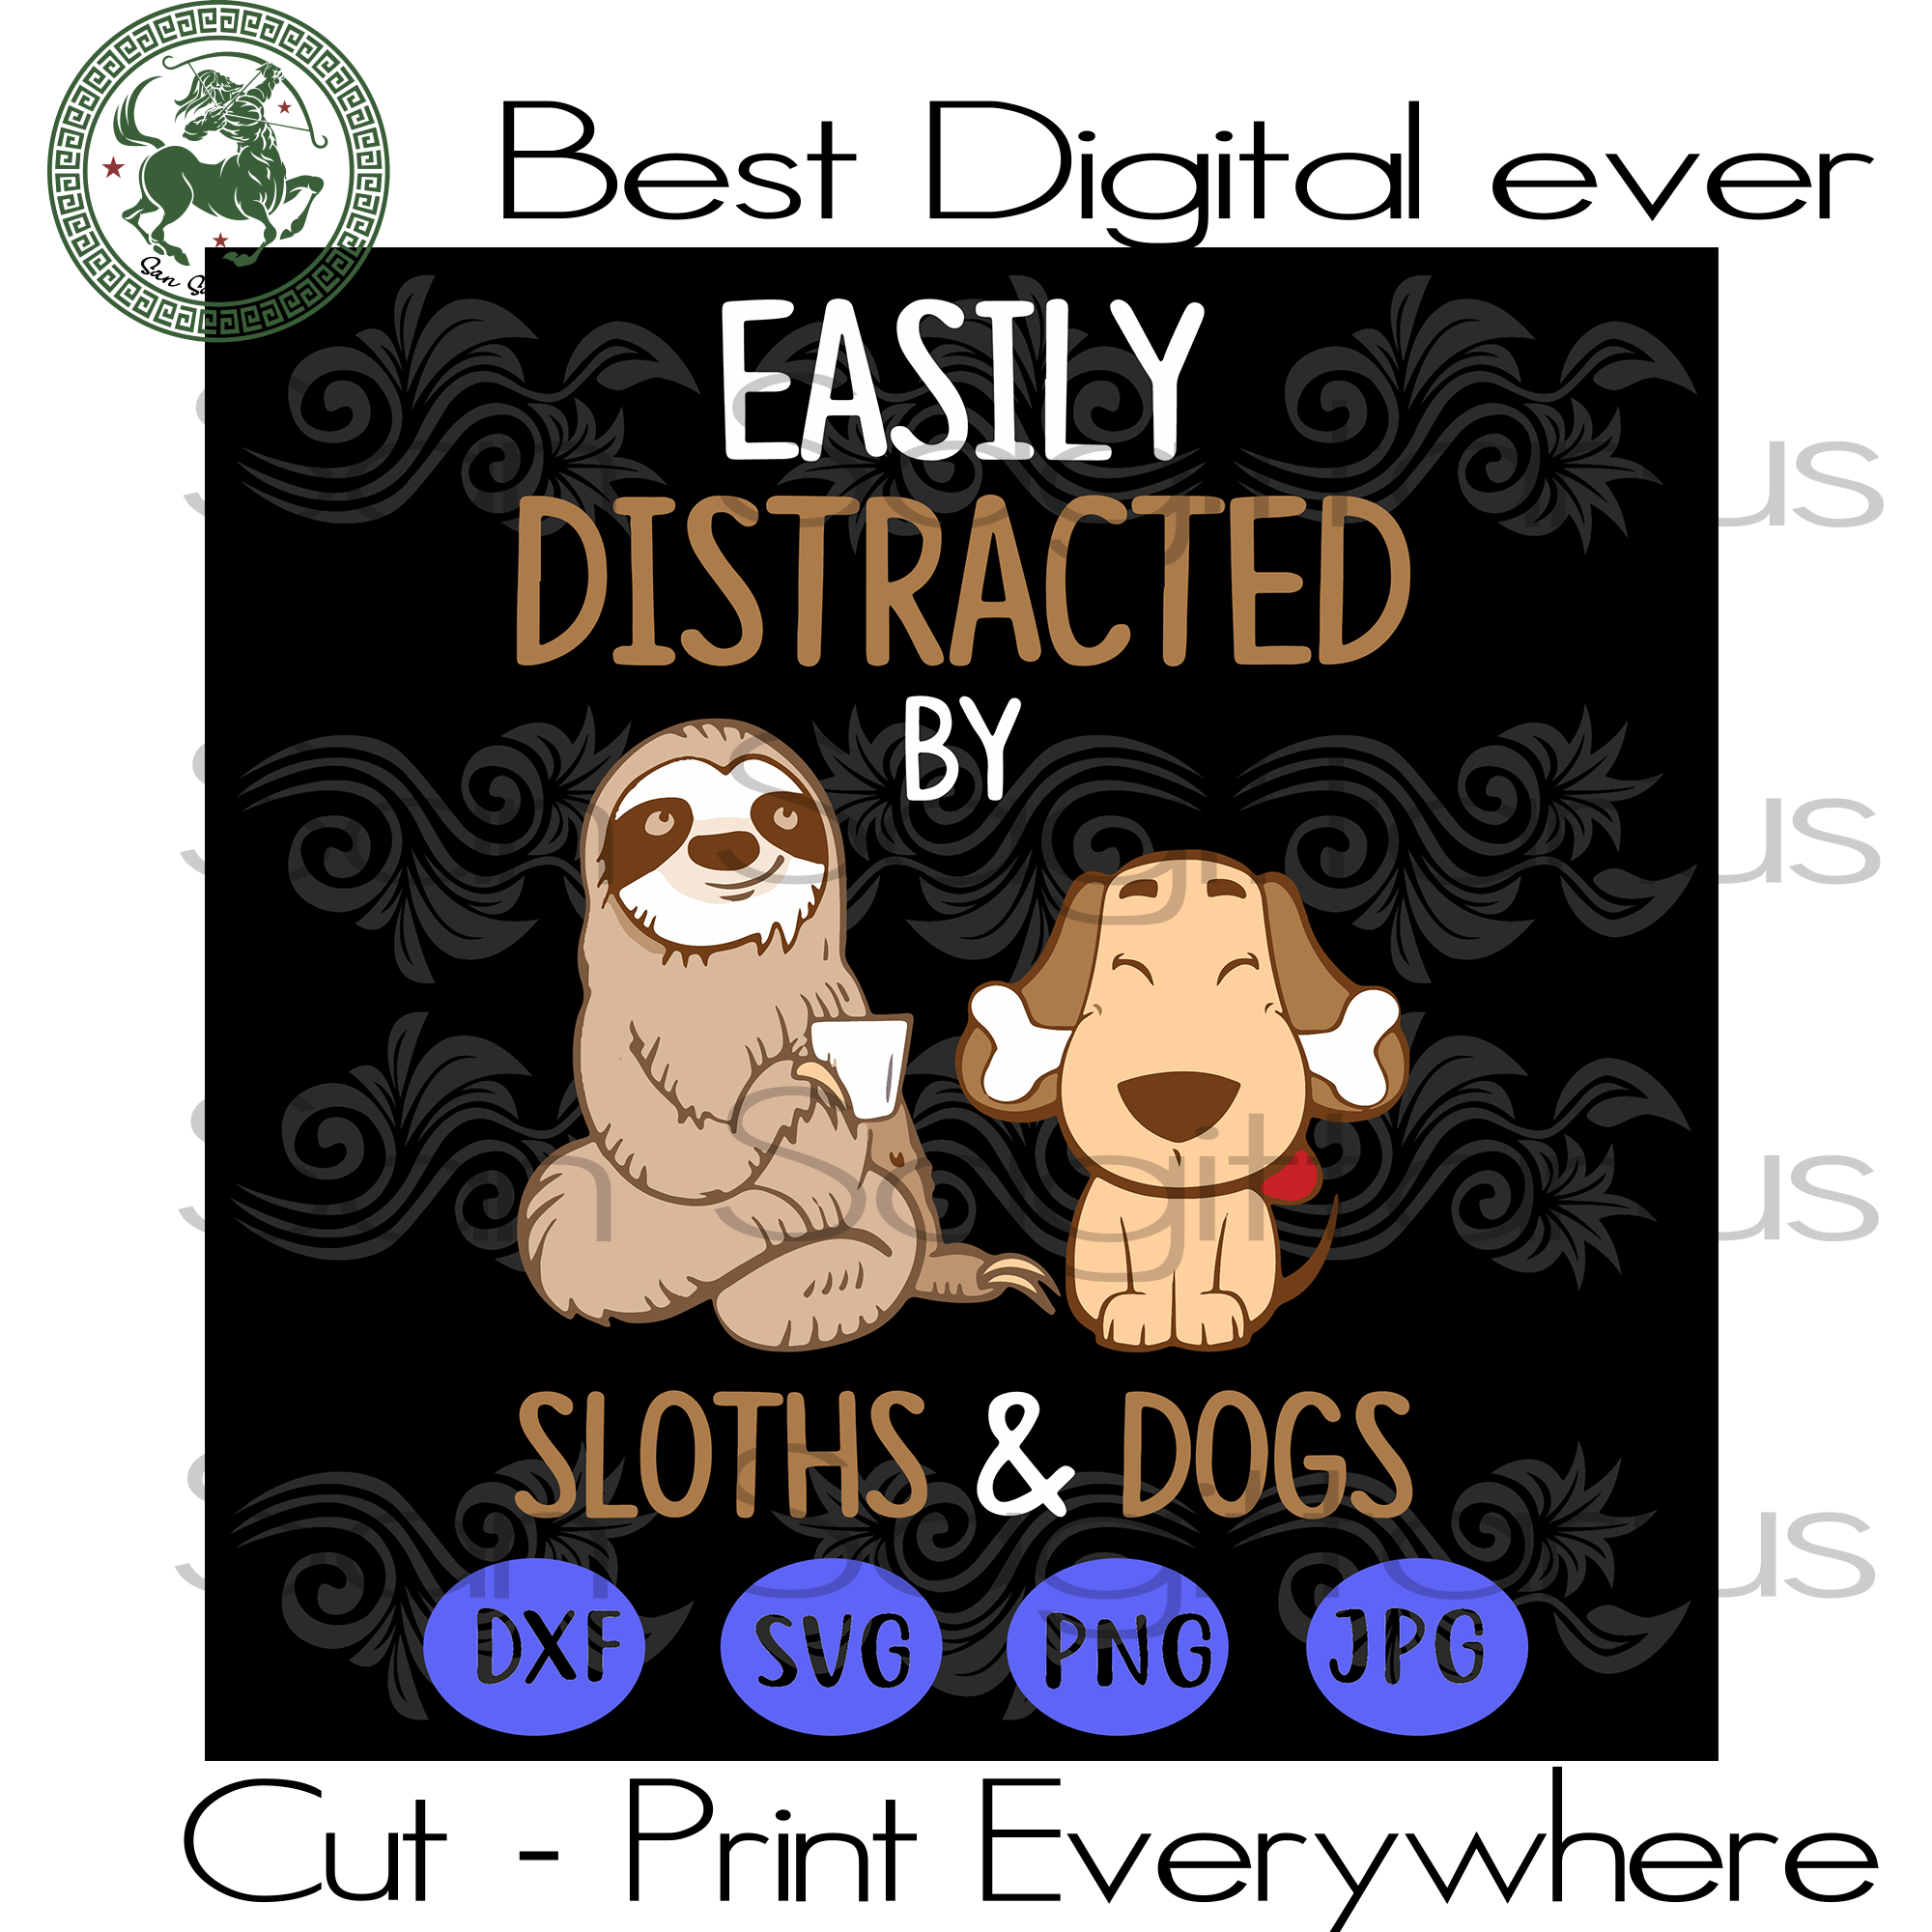 Sloth Dog Lovers, Dog Mom, Dog Lover, Dog Girl Pet Animals Lover SVG Files For Cricut Silhouette Instant Download | San Sagittarius